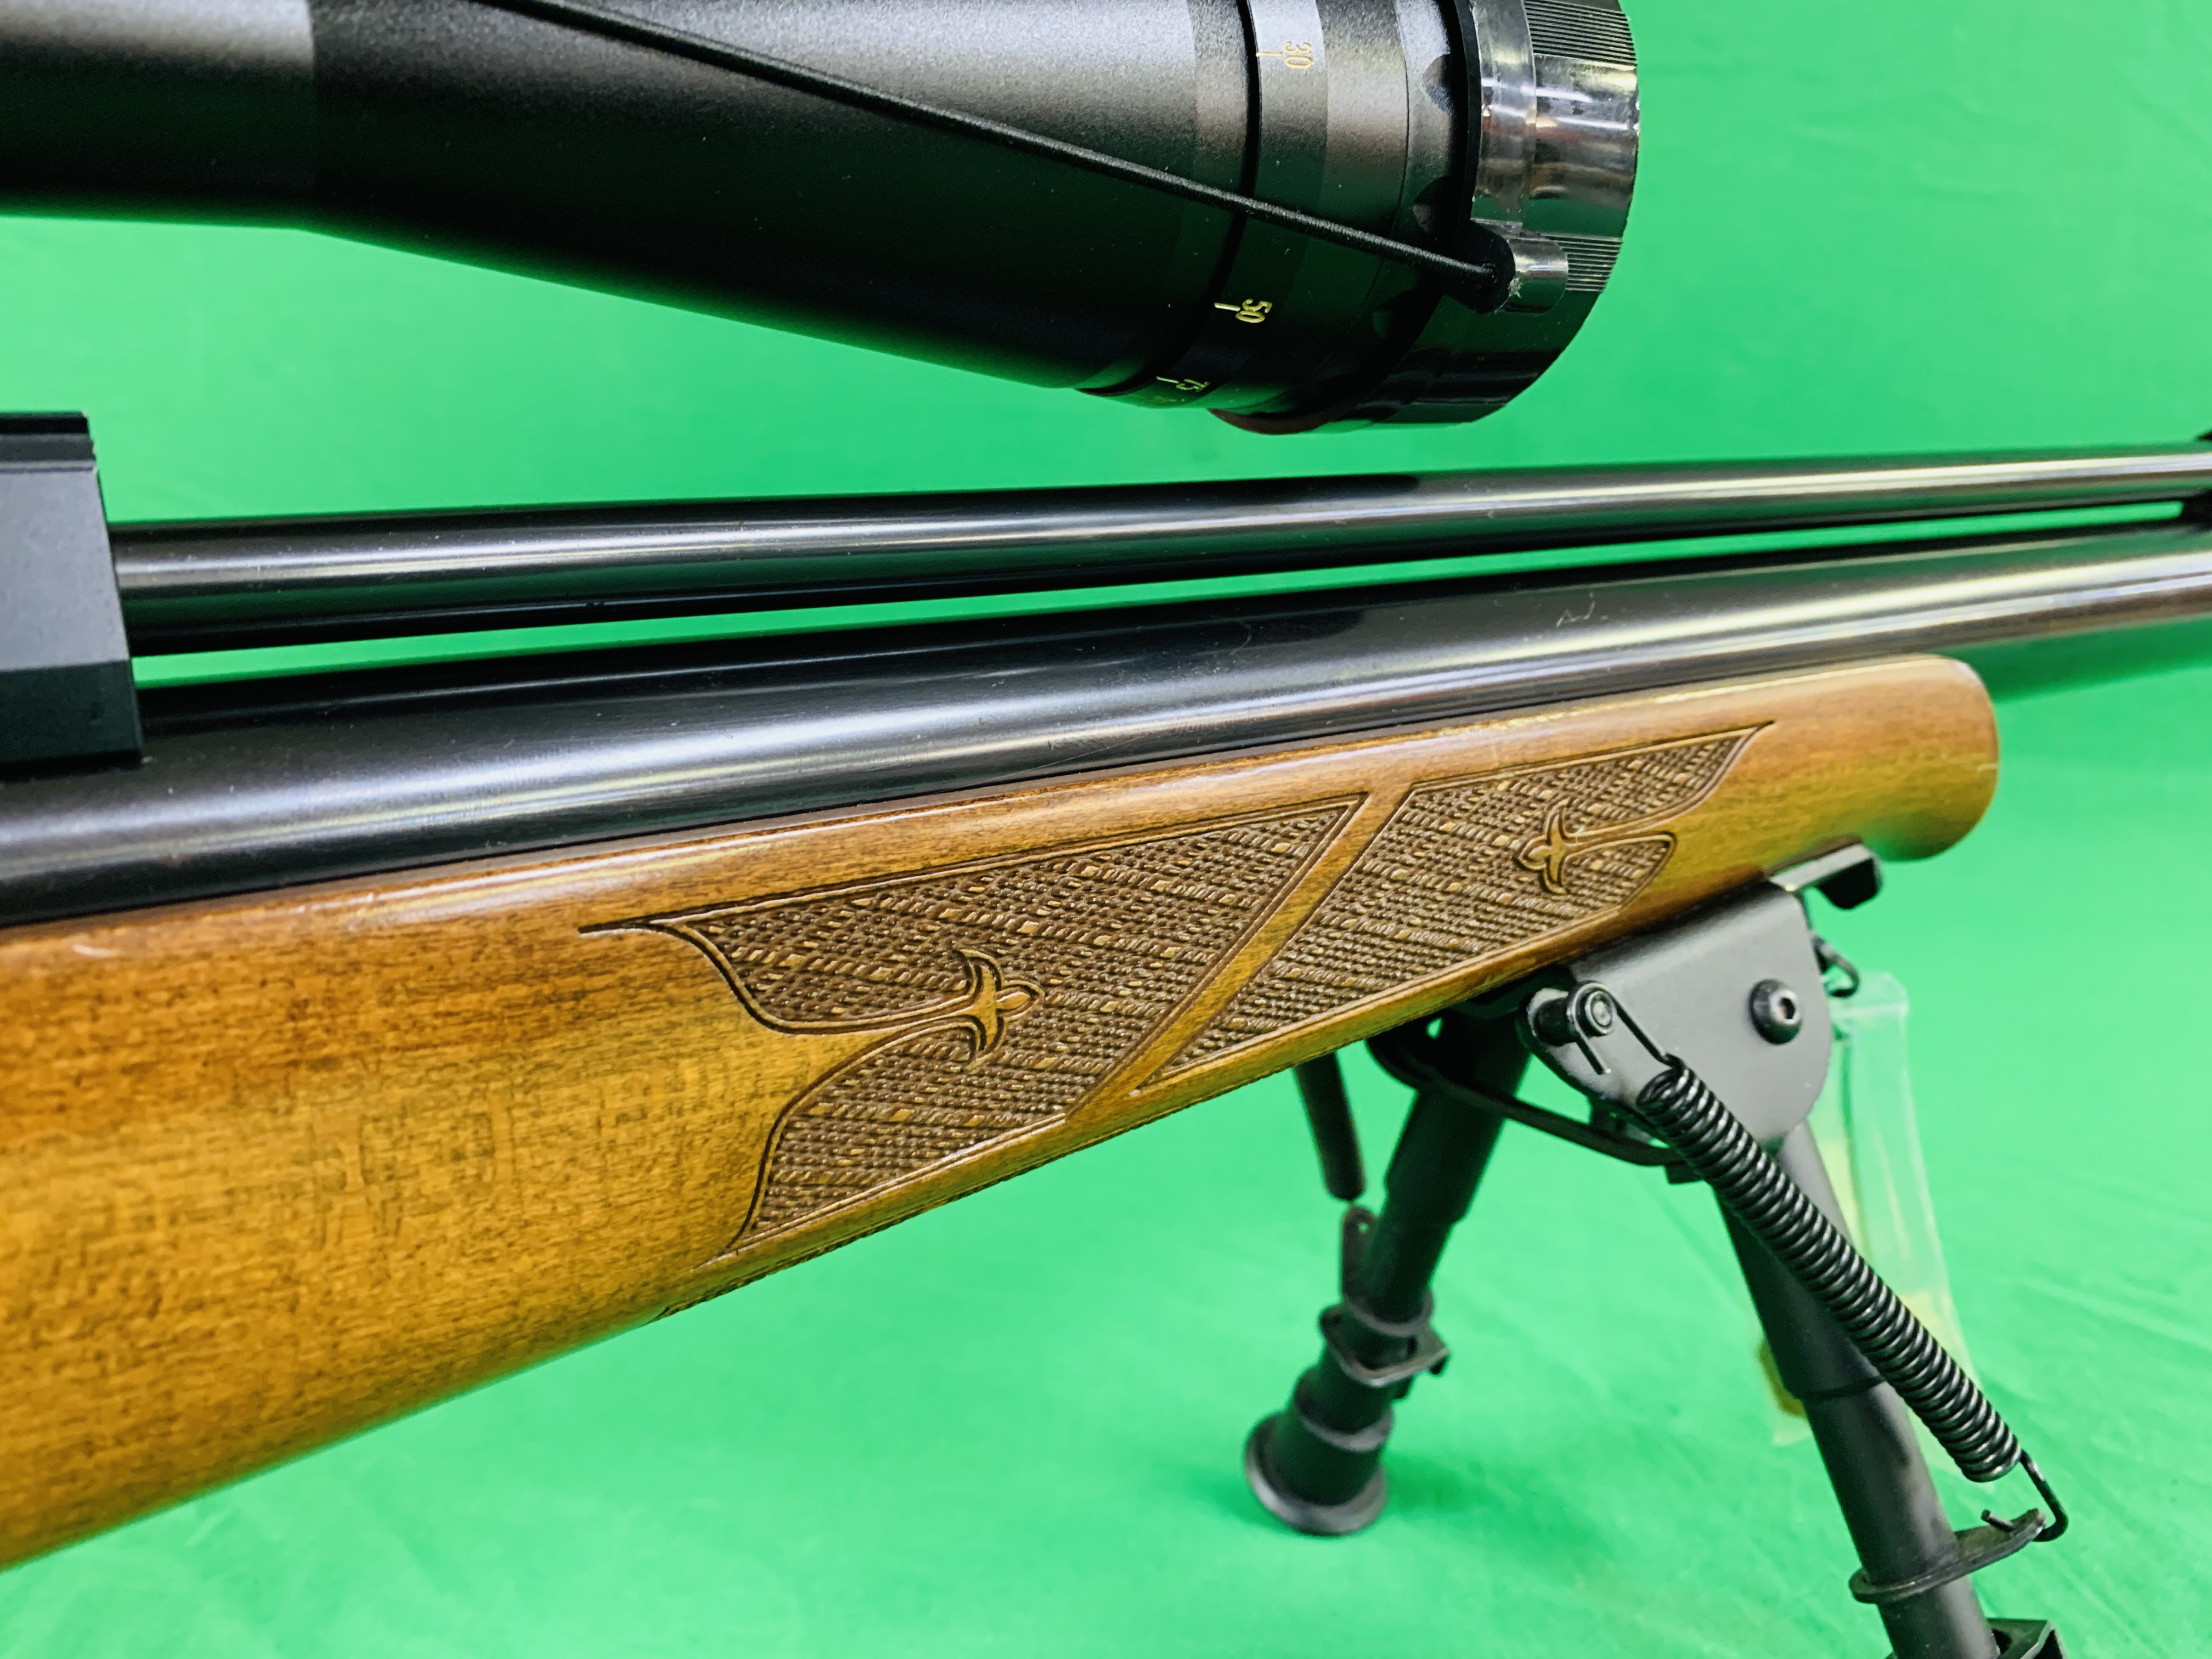 AIR ARMS S400 CLASSIC .177 BOLT ACTION PCP AIR RIFLE FITTED WITH BONUS 6. - Image 14 of 17